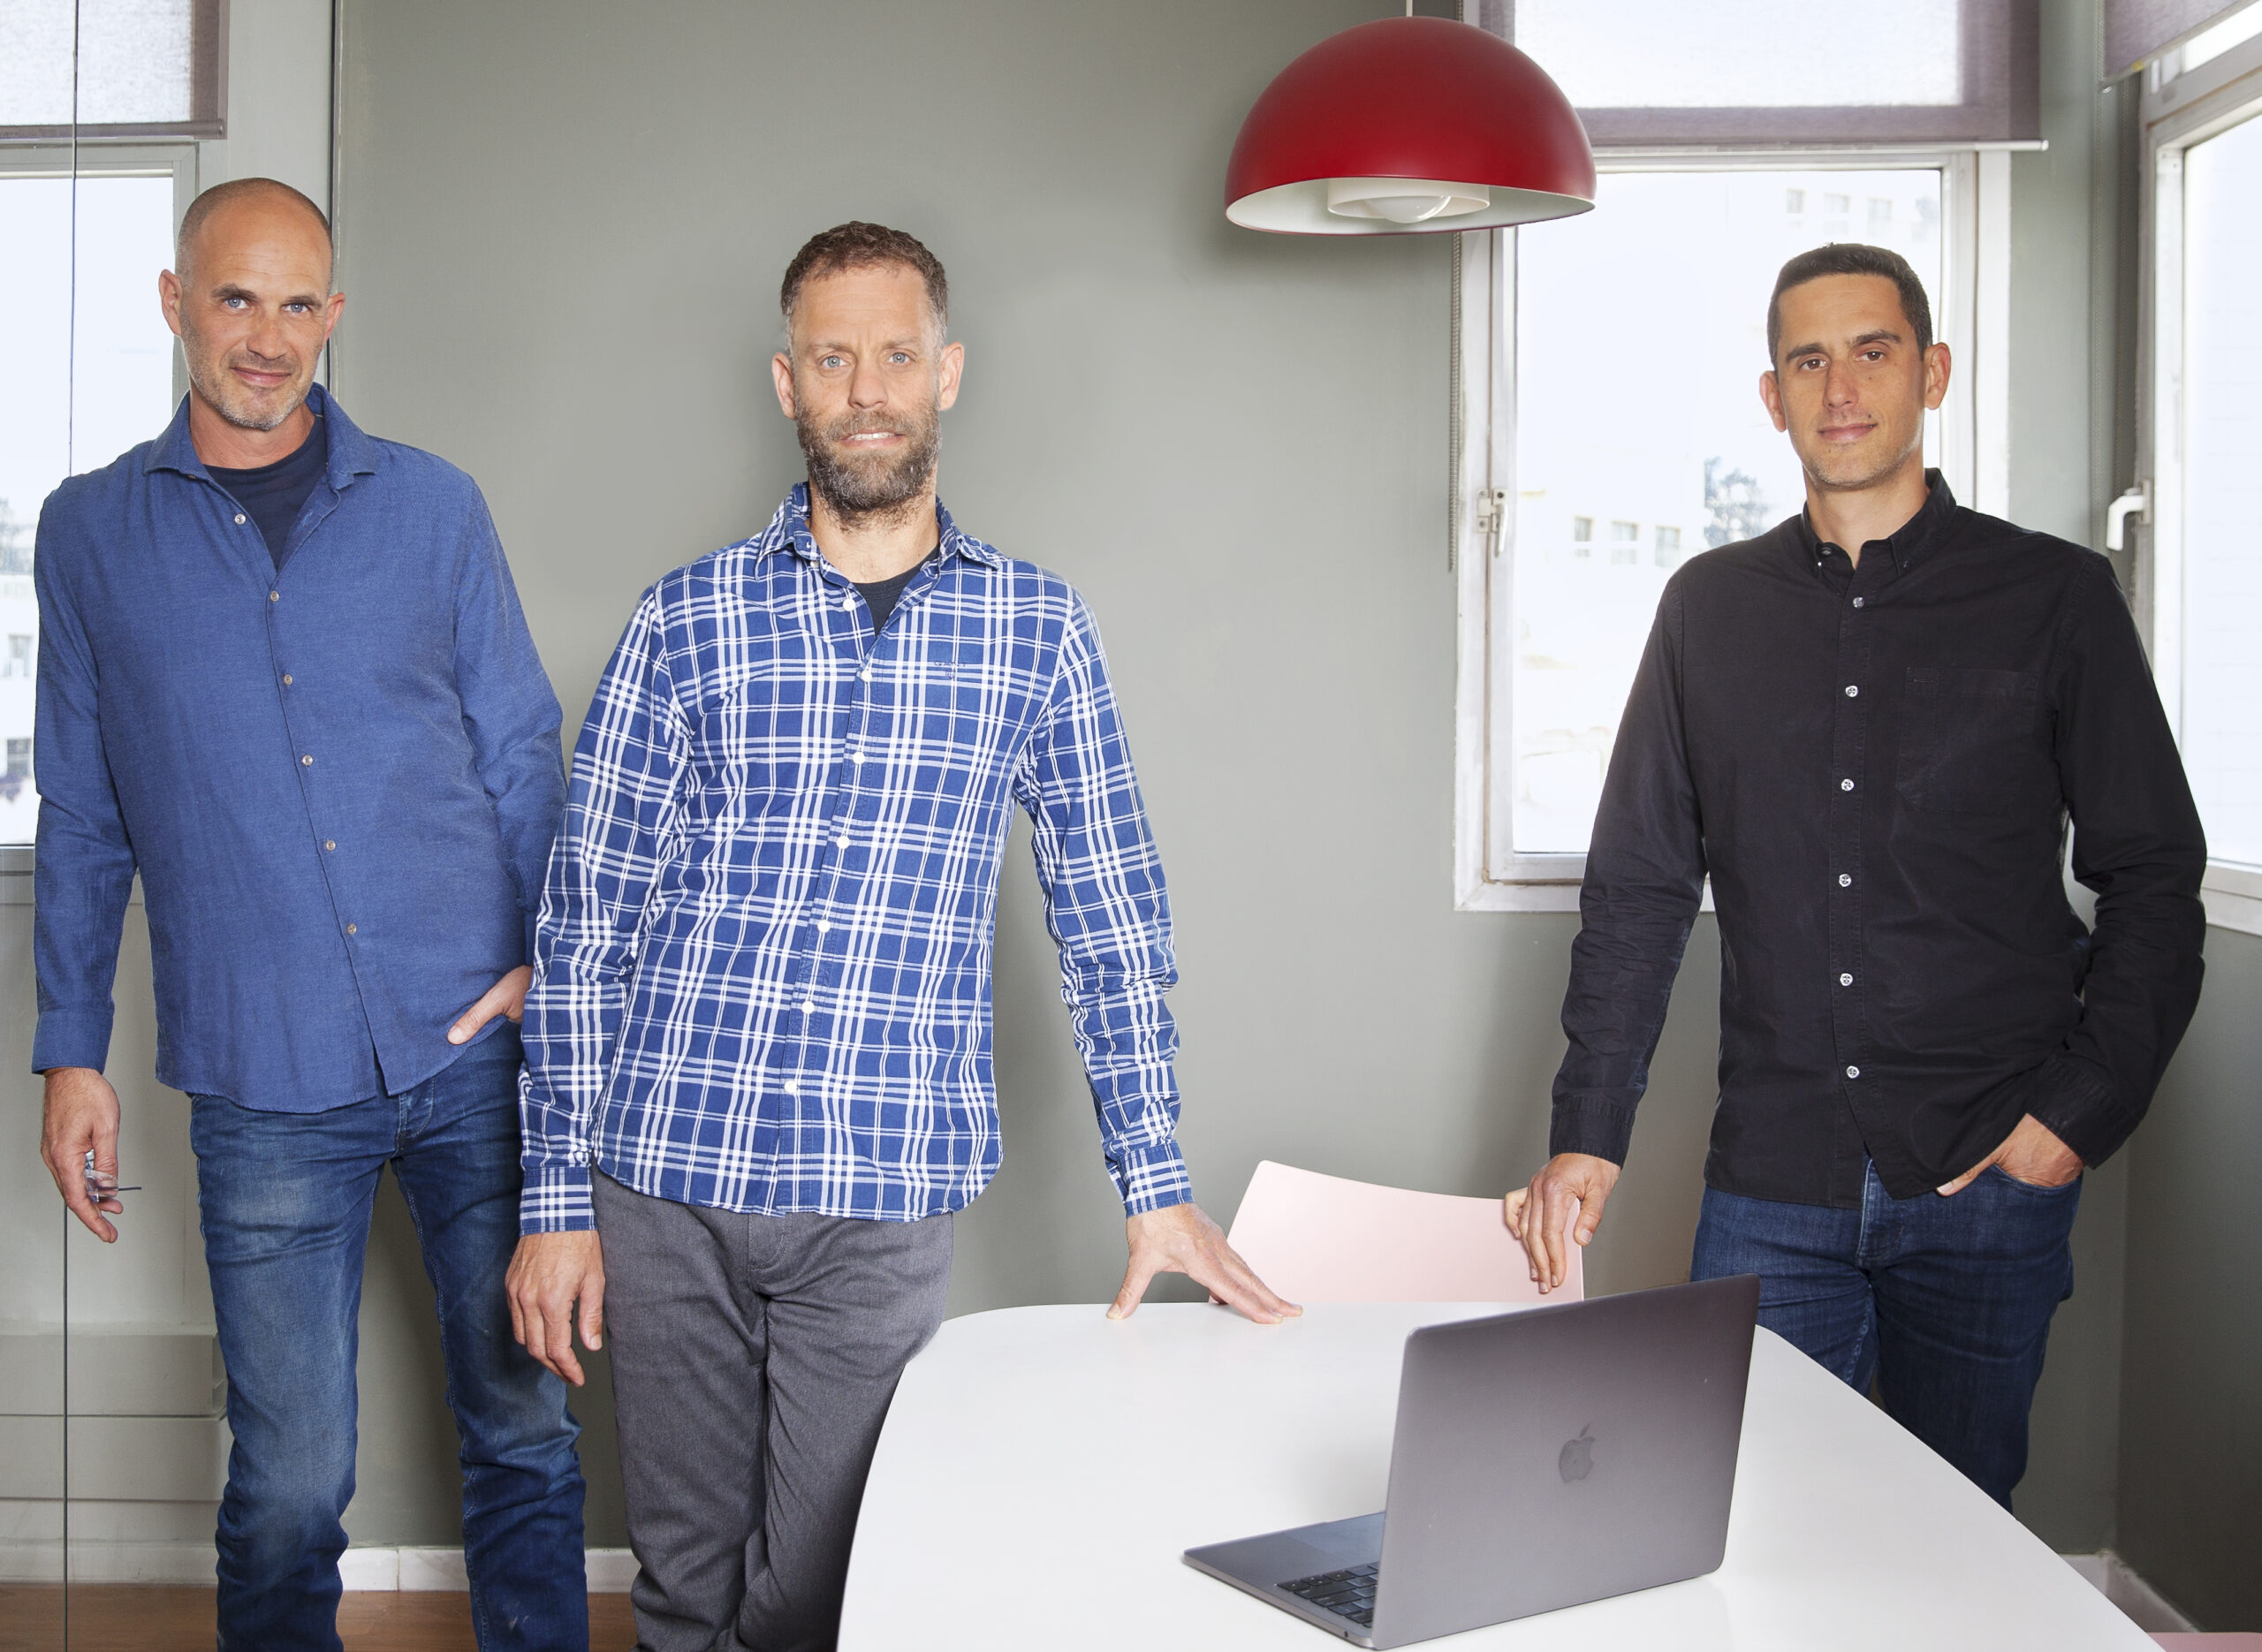 THE ISRAELI SPROUTT START-UP COMPLETES 26 MILLION DOLLAR SECOND ROUND